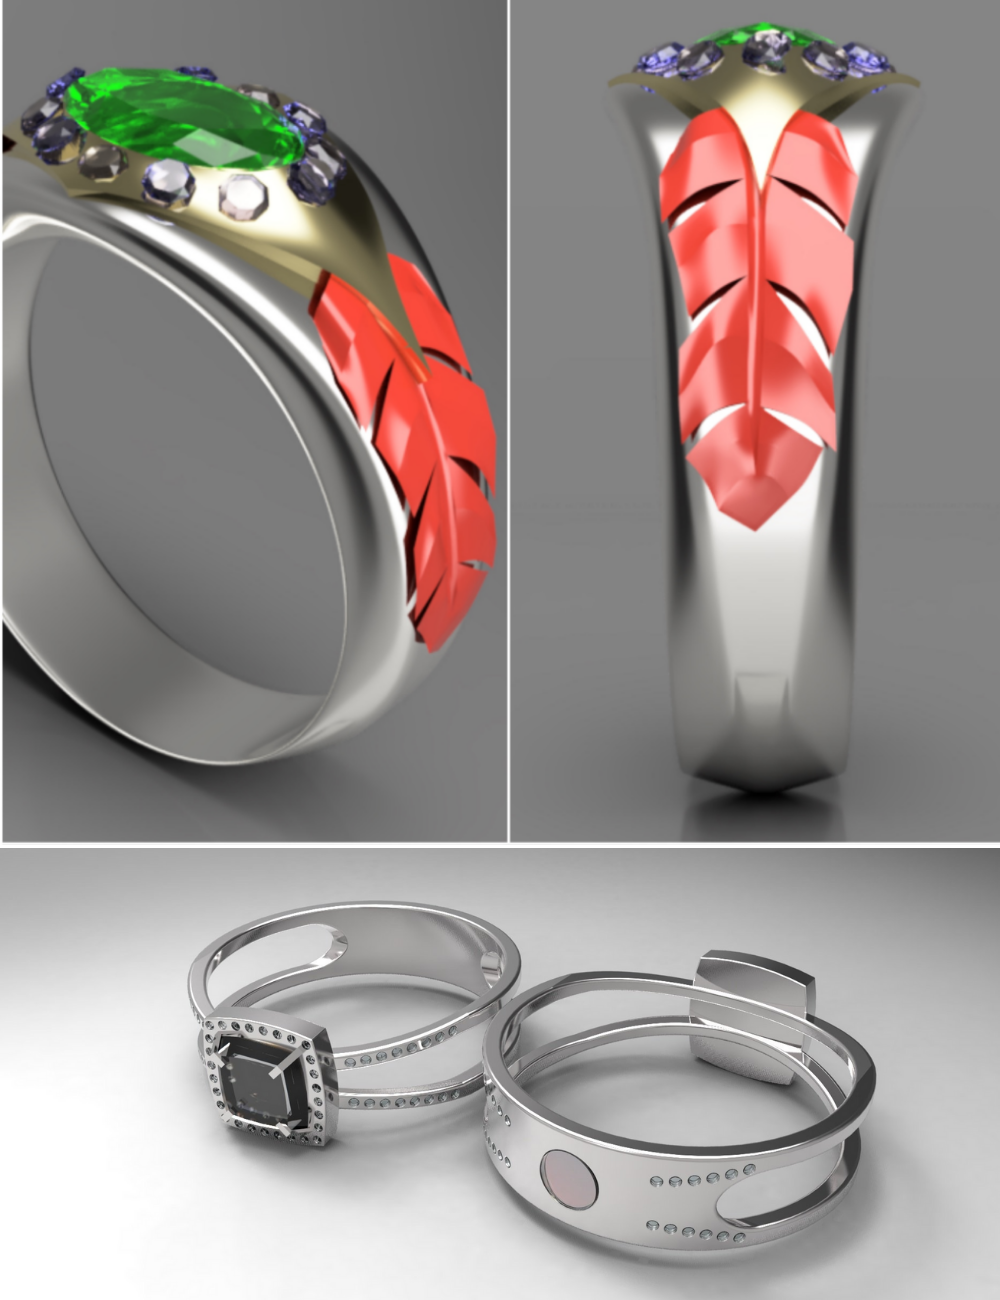 Custom ring design contest and jewelry designer for wedding ring contest